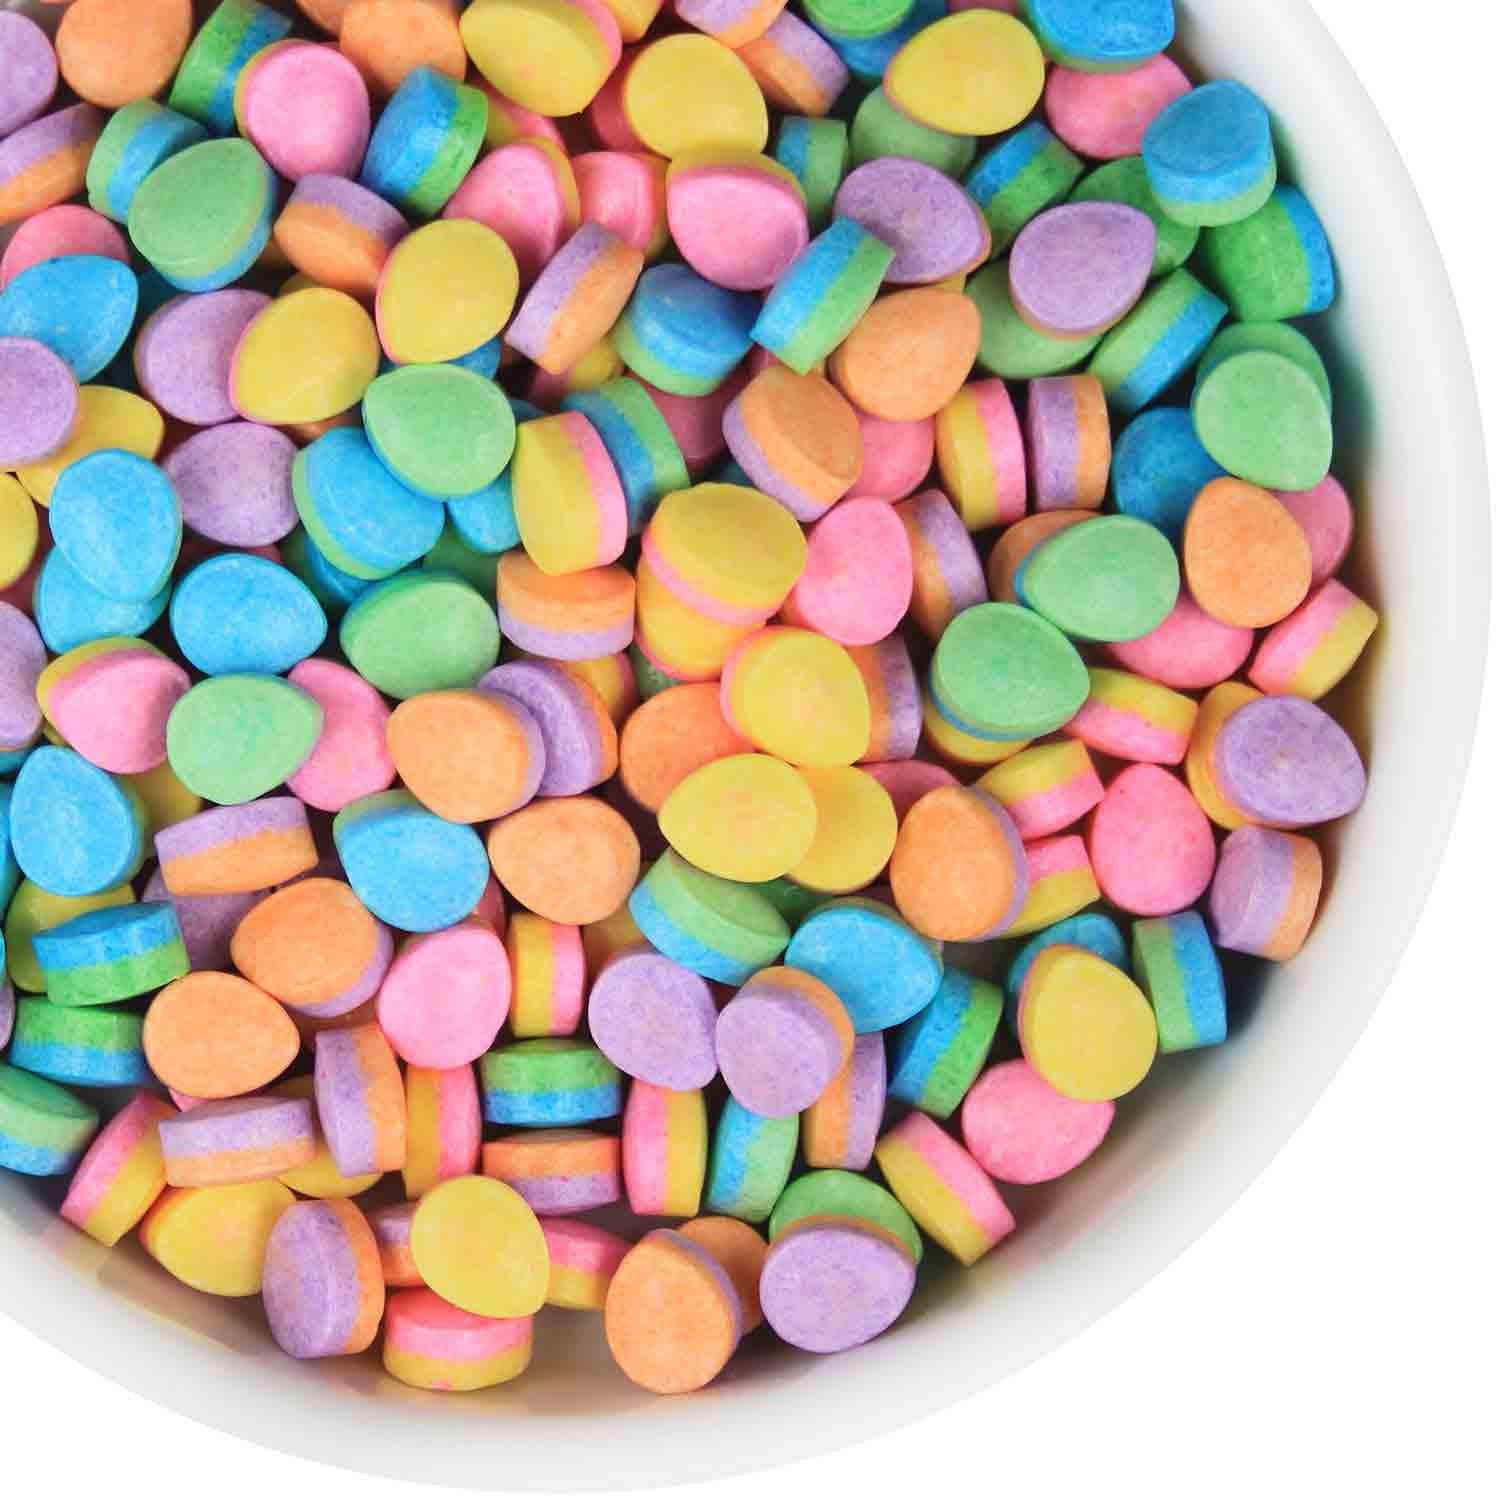 Two Toned Easter Egg Candy Sprinkles